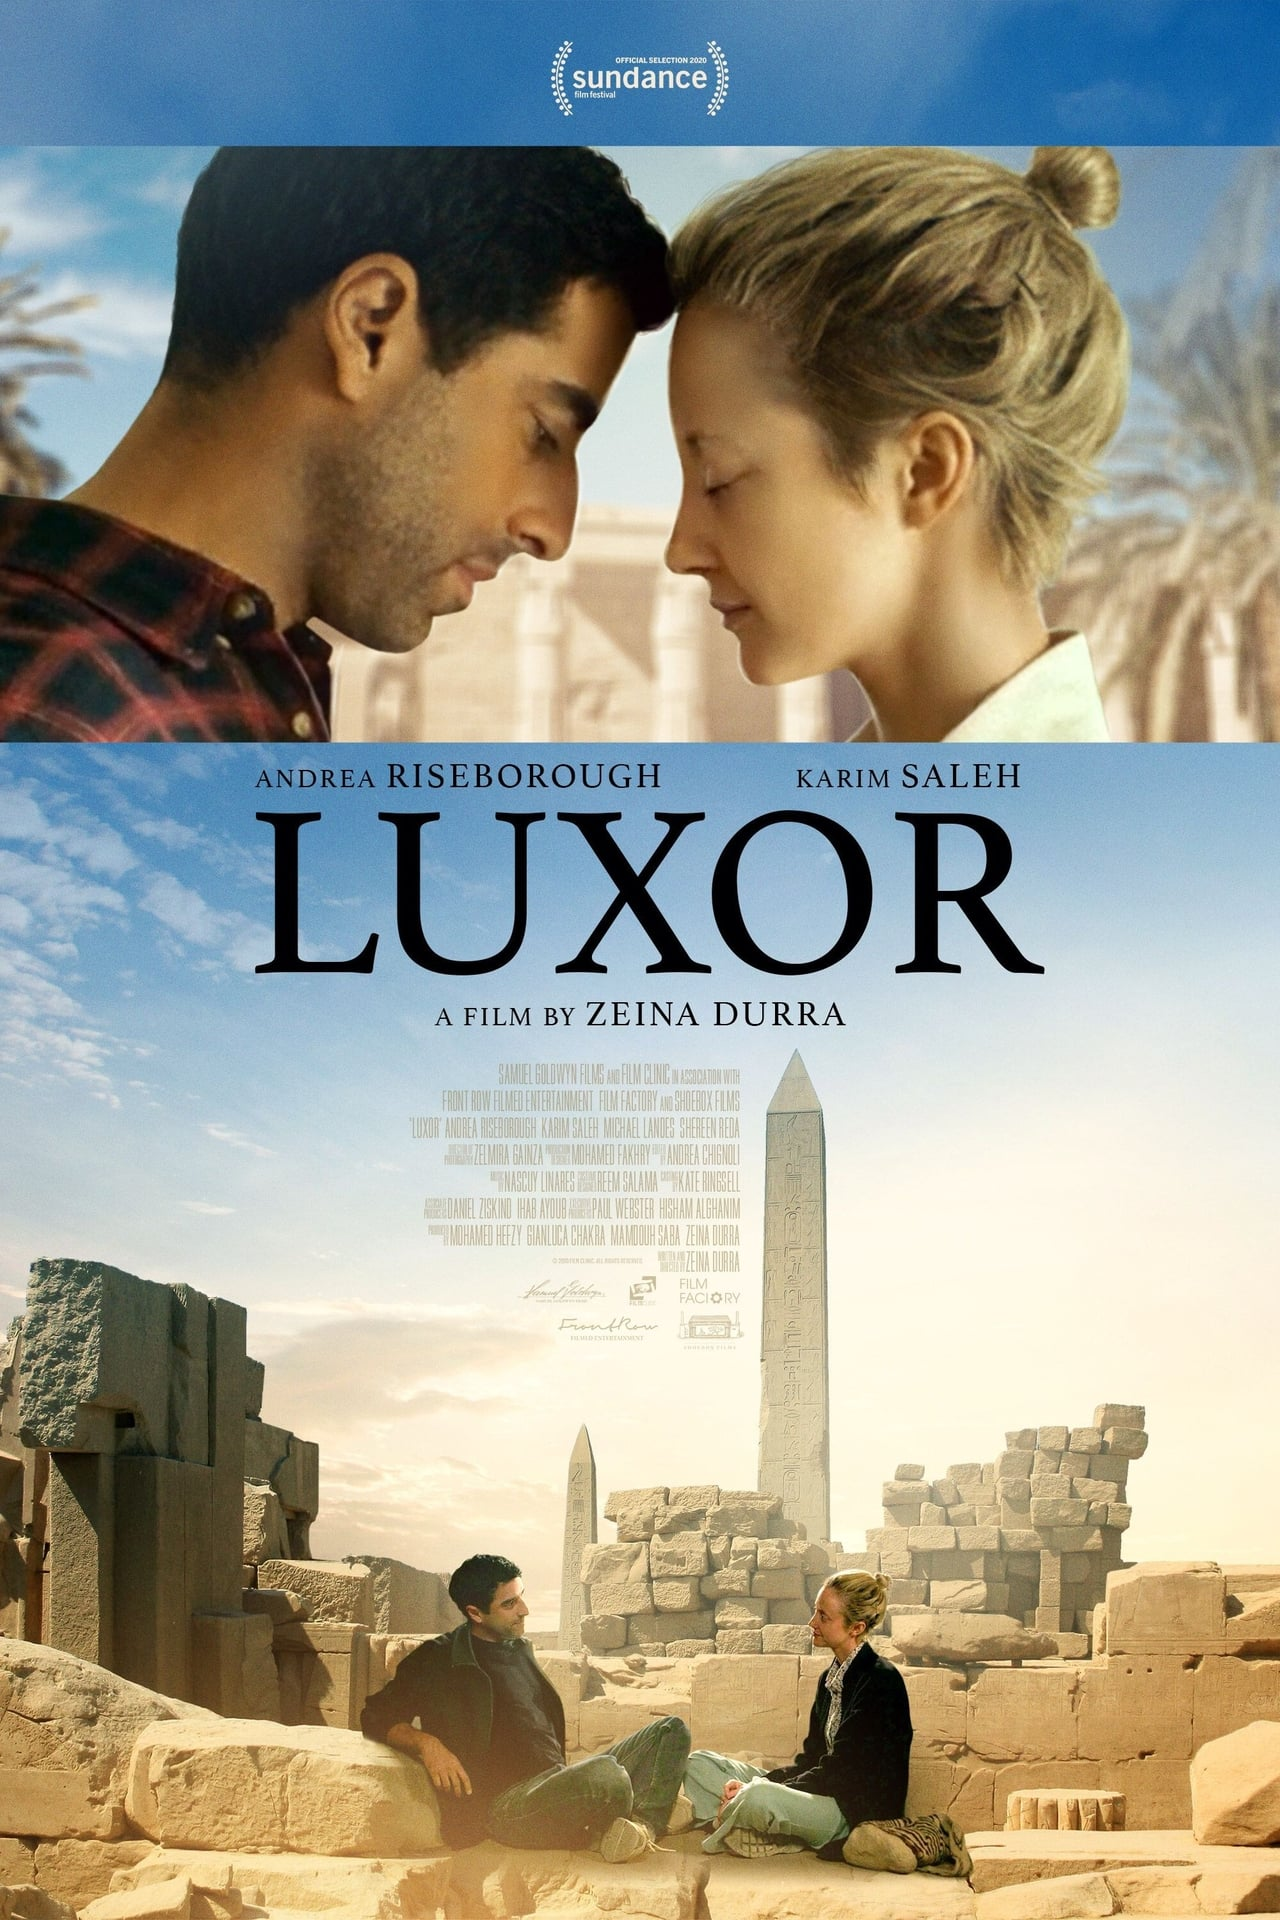 Luxor (2020) 720p WEBRip Dual Audio [Unofficial Dubbed] Hindi-English x264 AAC